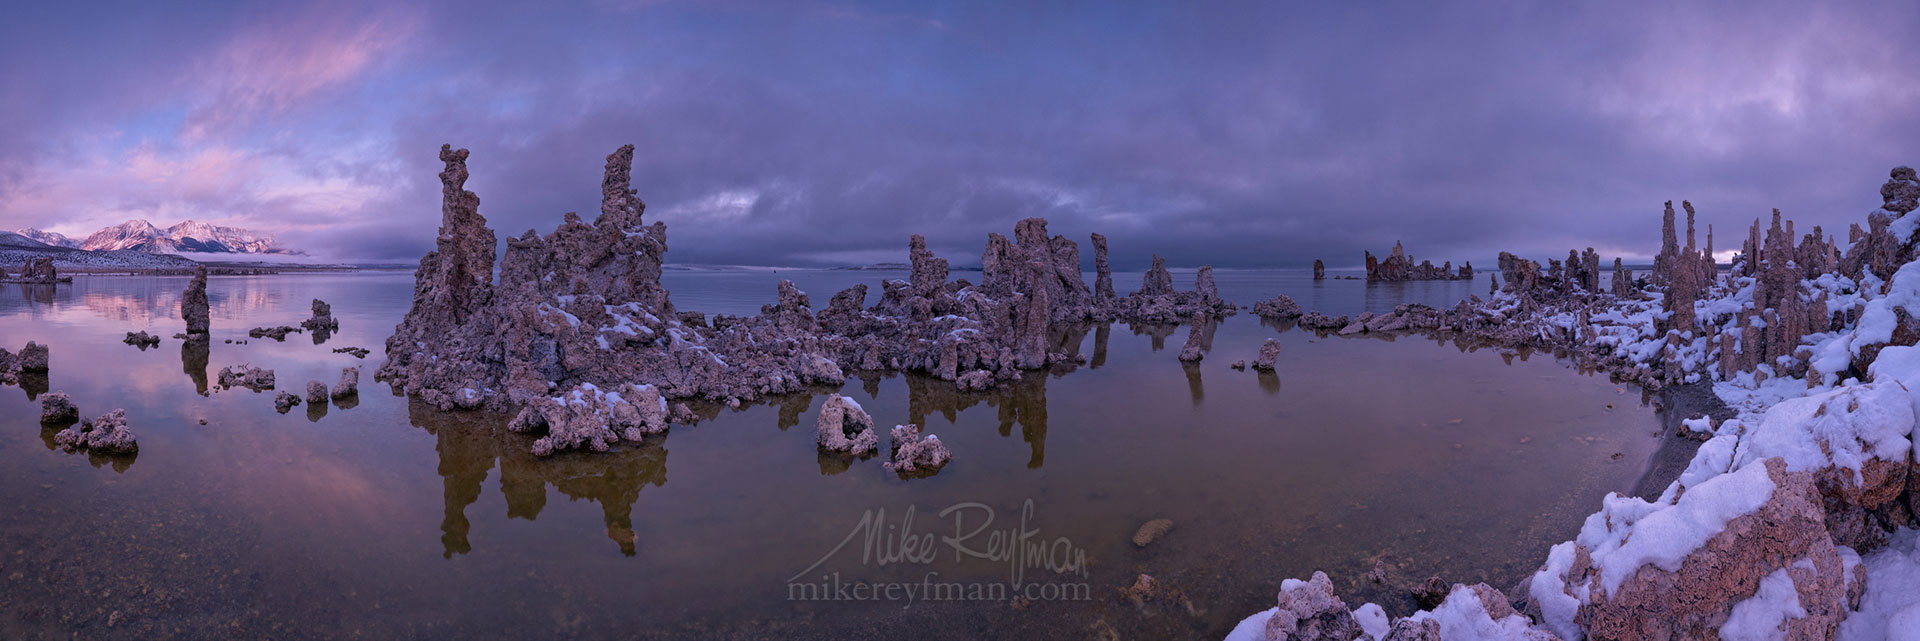 Mono Lake, Tufa State Natural Reserve, Eastern Sierra, California, USA ML1-MRN3X0724-32-Pano - Mono Lake Tufa State Natural Reserve, Eastern Sierra, California - Mike Reyfman Photography